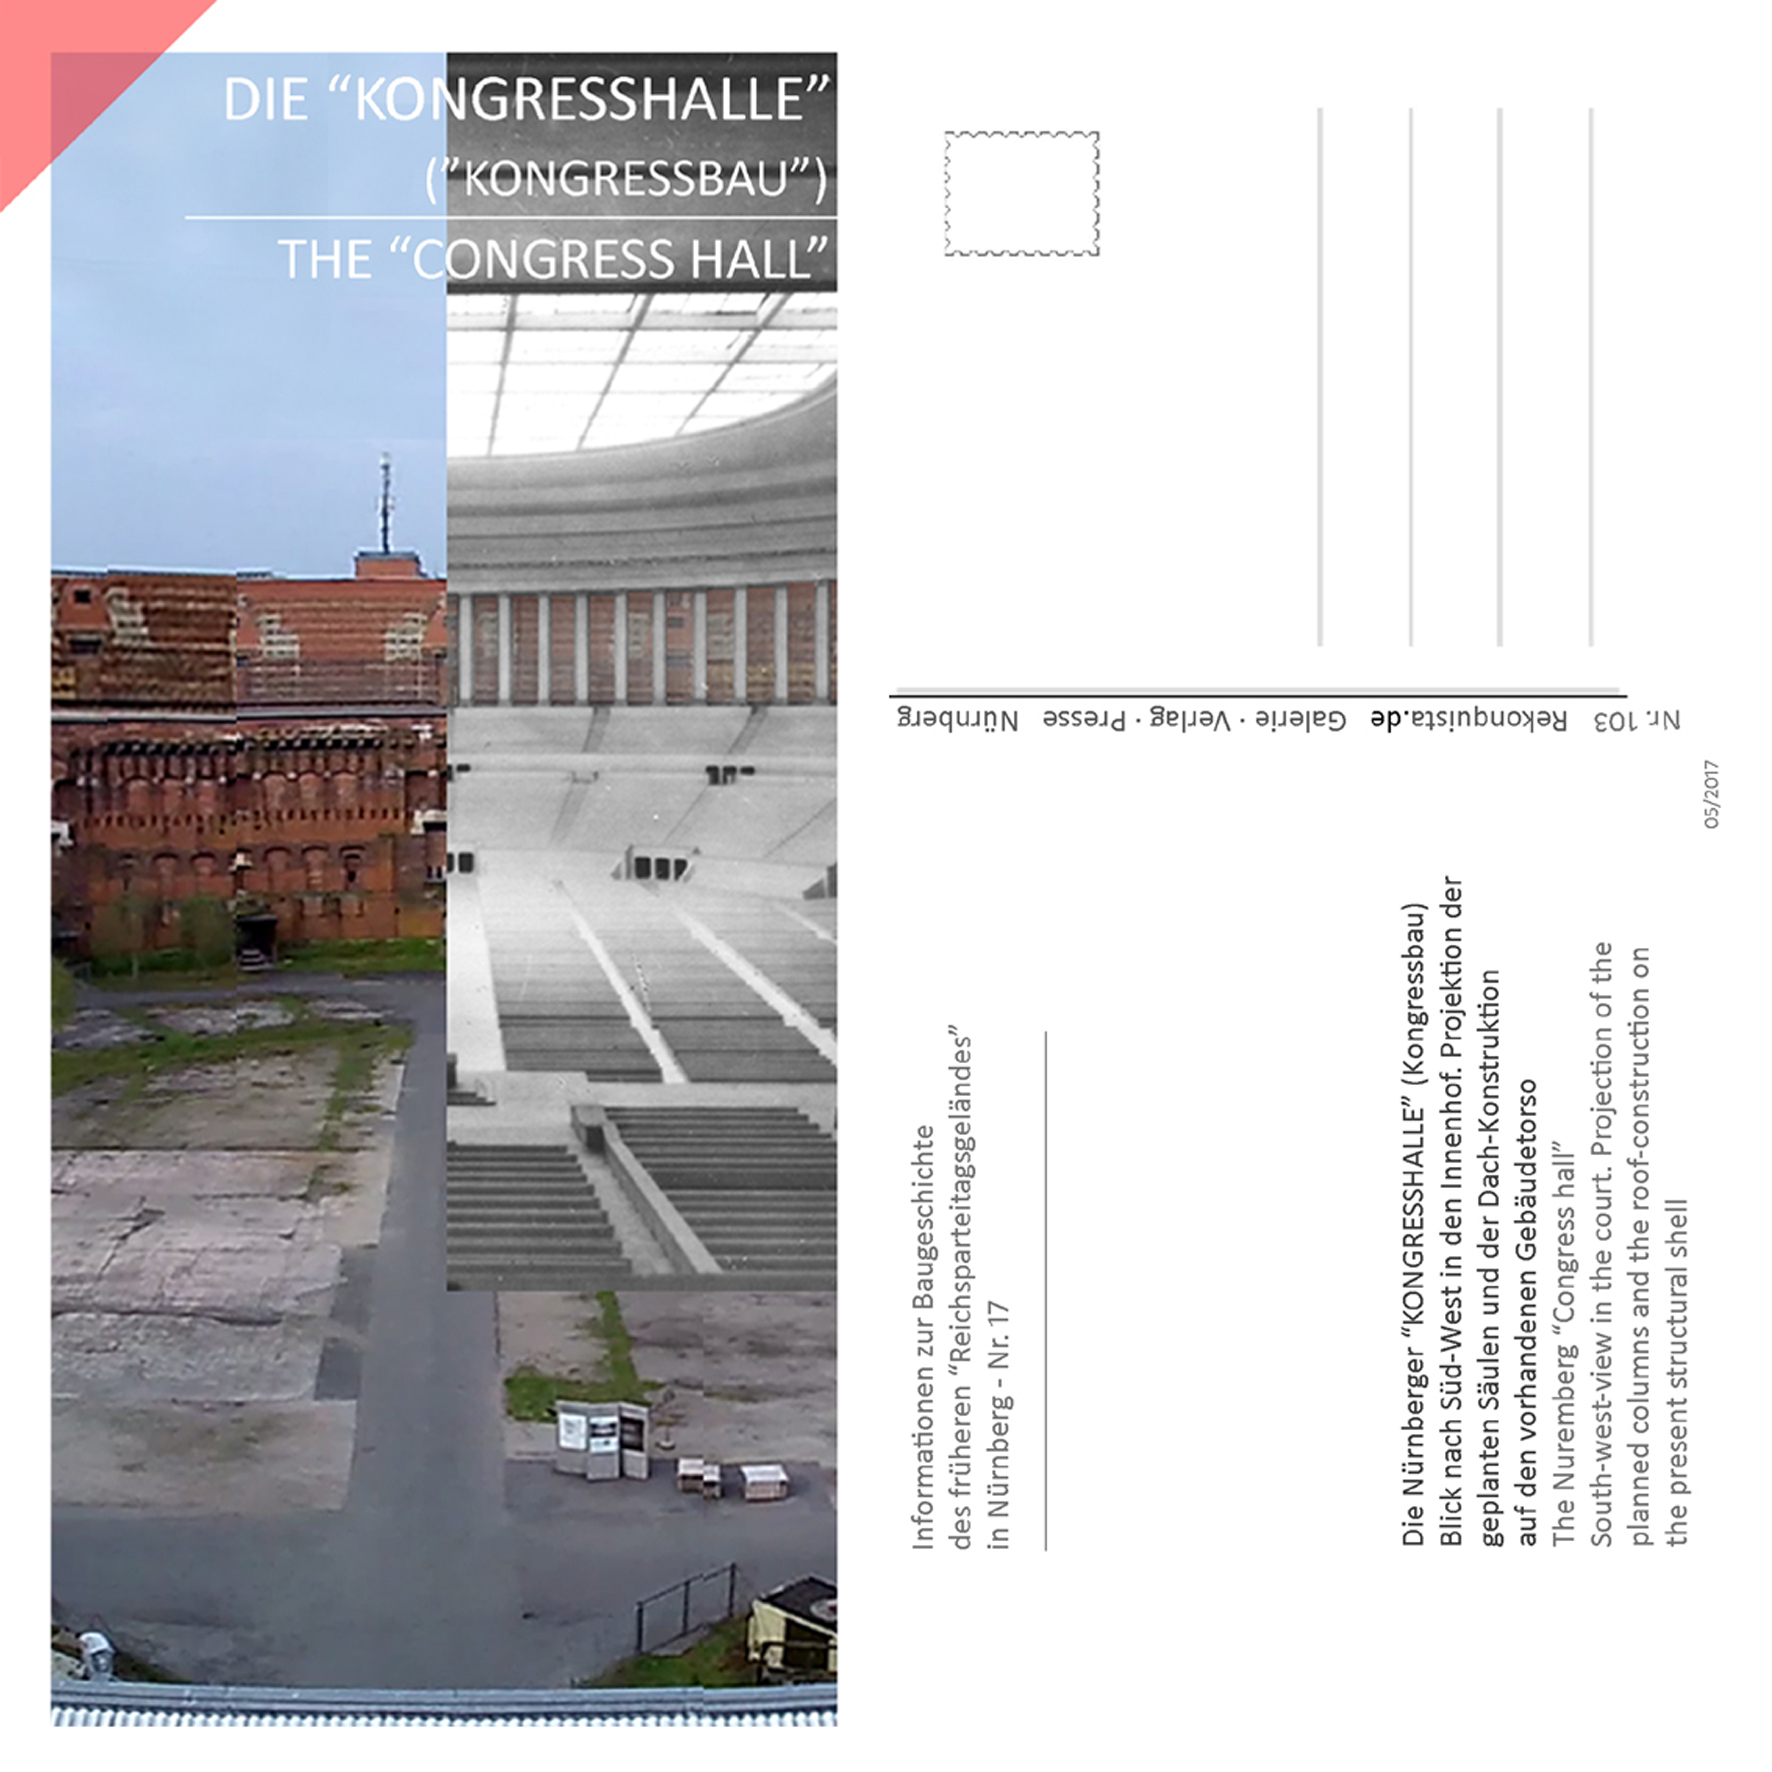 Nuremberg-Party-Rally-Grounds-new-Congress-hall-roof-66-columns-drone-flight-inner-court-Now-Then-panoramic-view-picture-postcard-folding-card